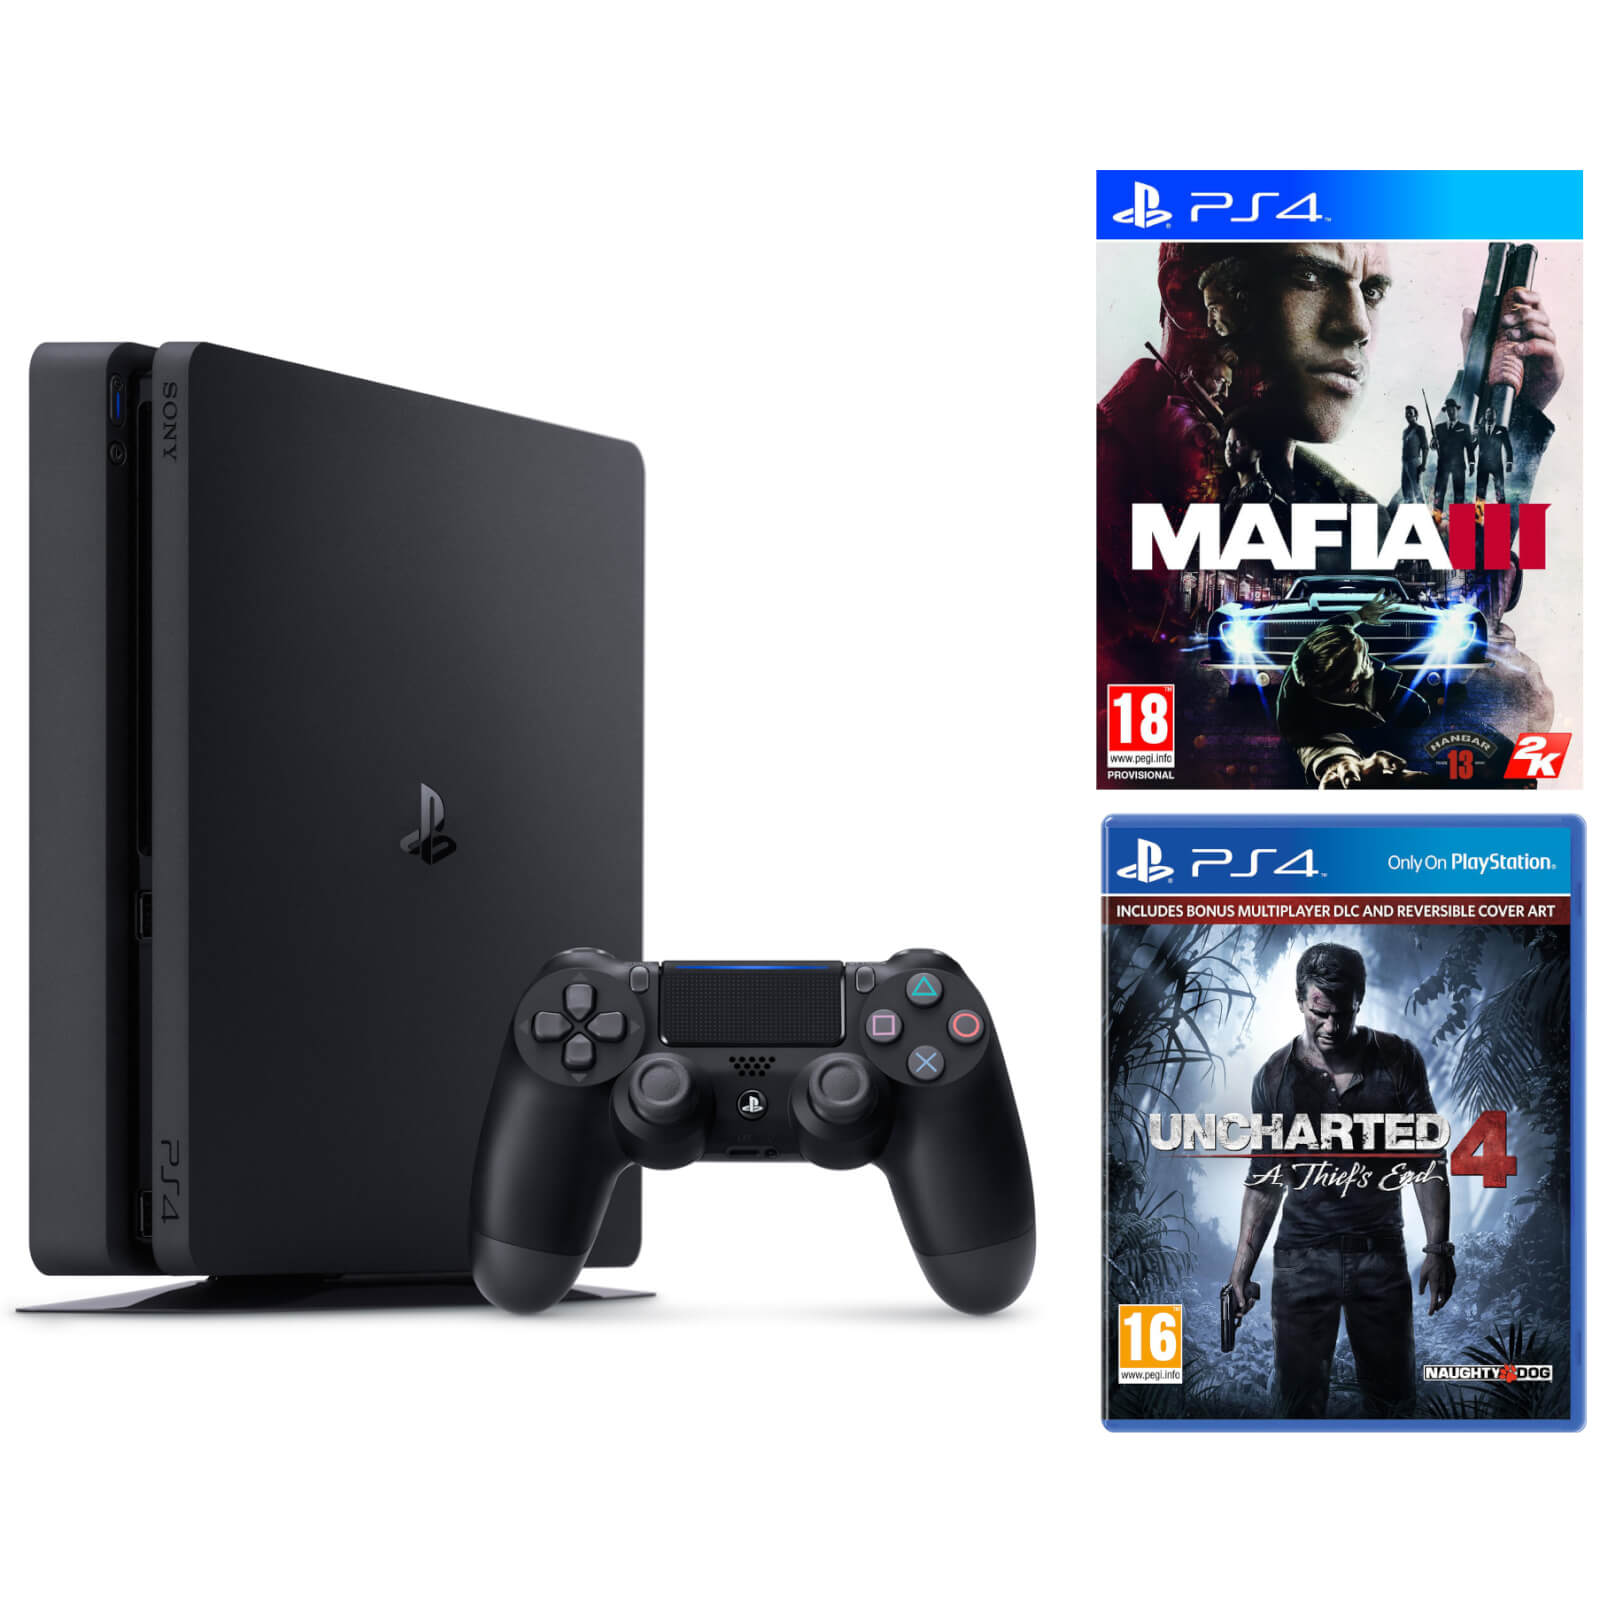 Playstation 4 Slim 500gb Console Includes Uncharted 4 And Mafia